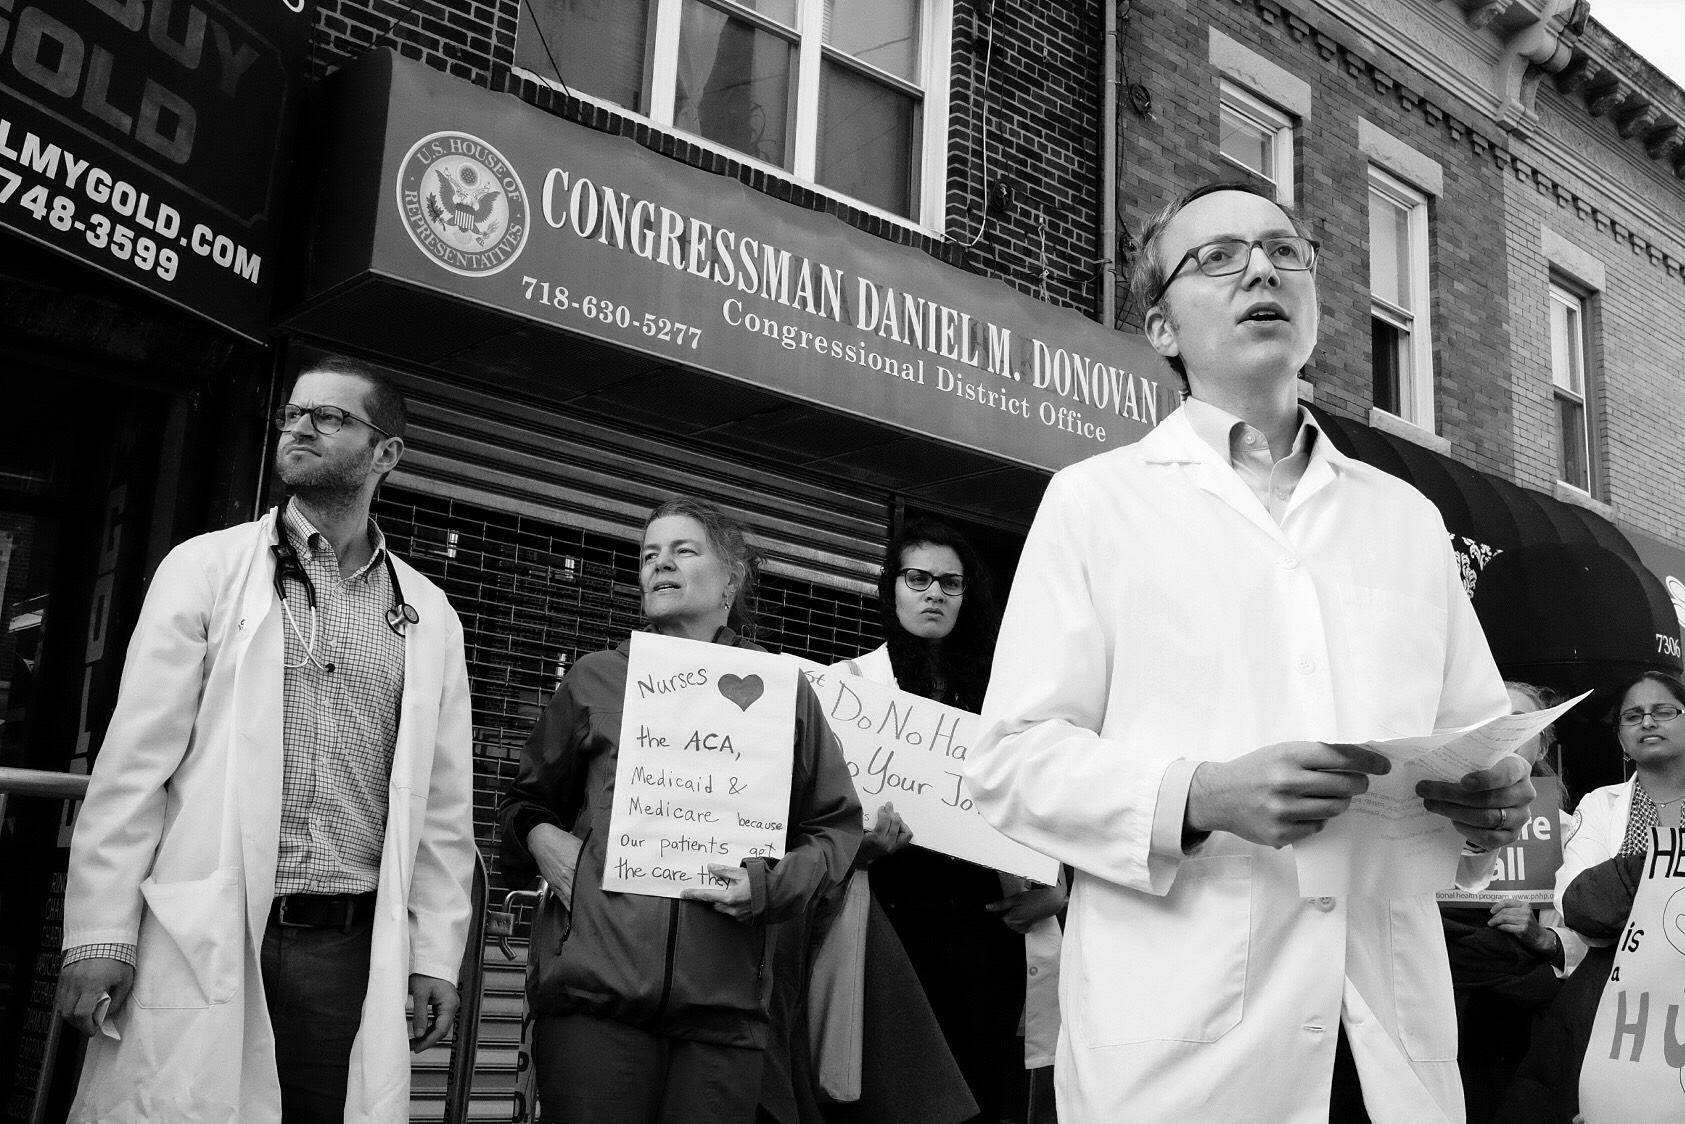 #HealthProfessionals Protest: Rep. Dan Donovan's Office (February 25th, 2017)